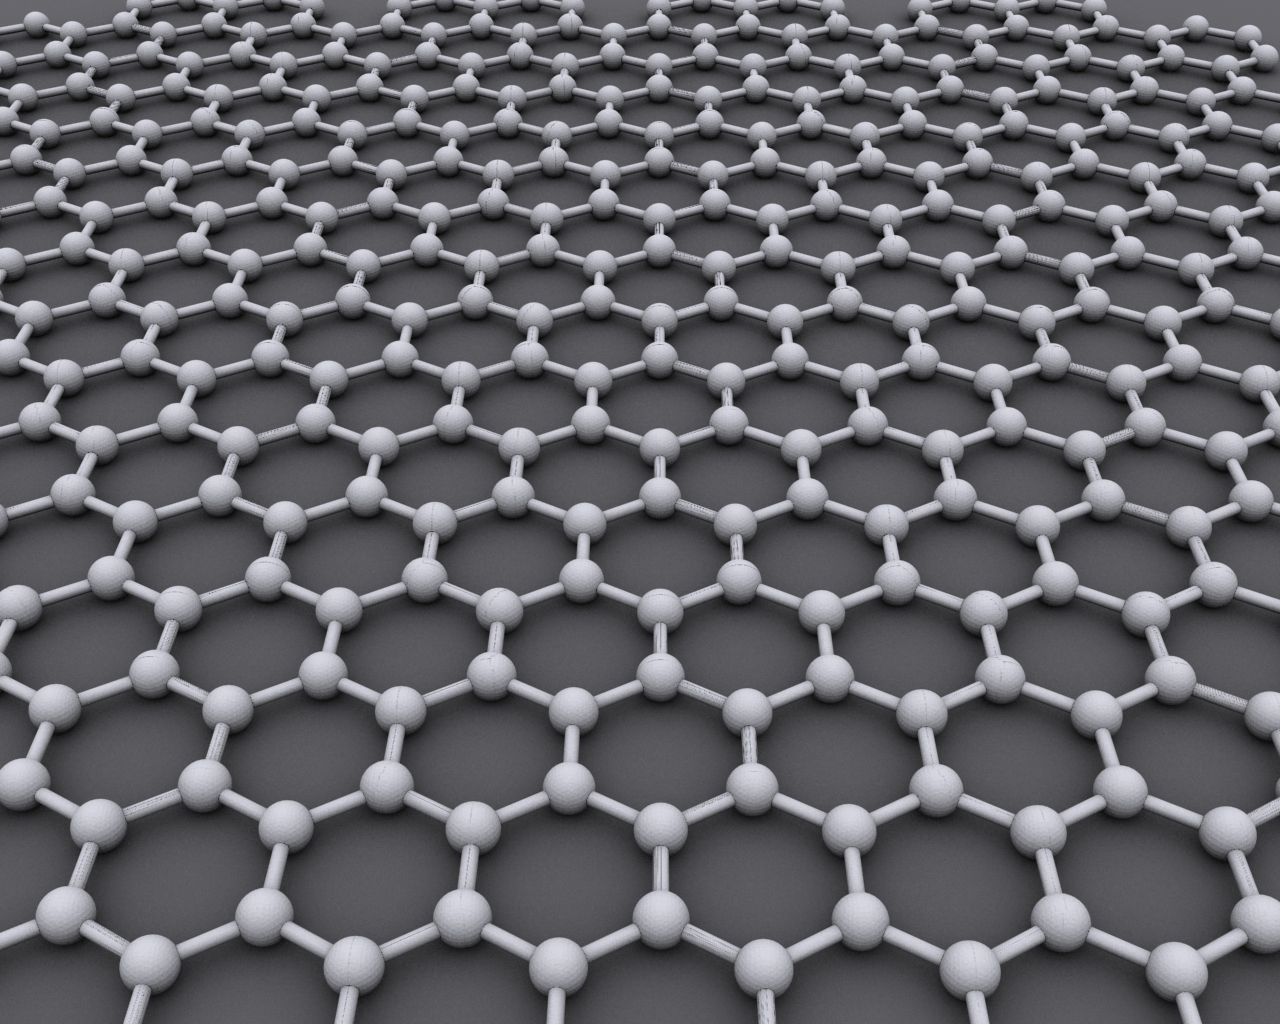 Researchers create 'extremely small' sensor using 'white graphene'